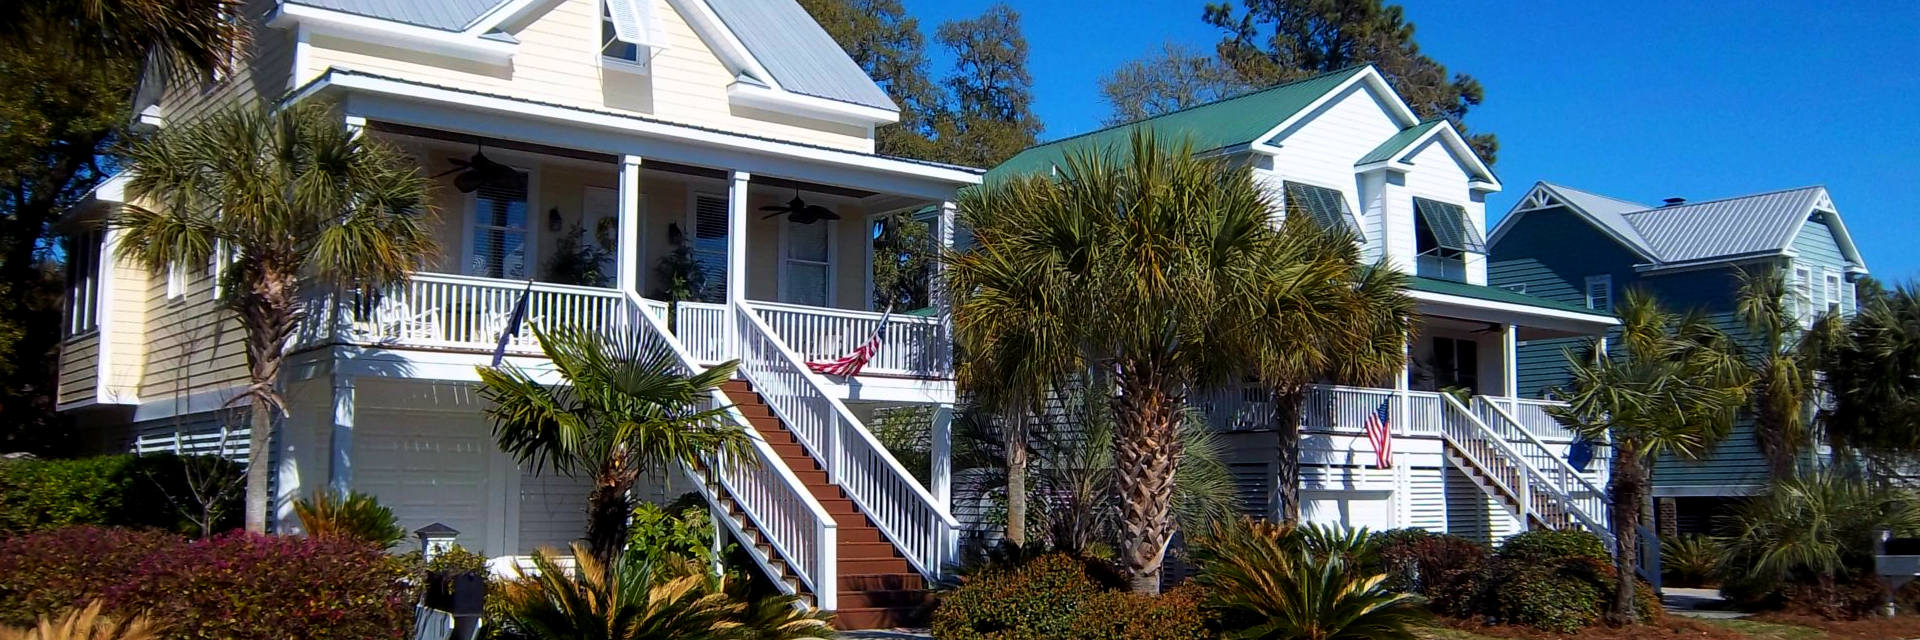 Homes For Sale in Myrtle Beach & Nearby Grand Strand Communities